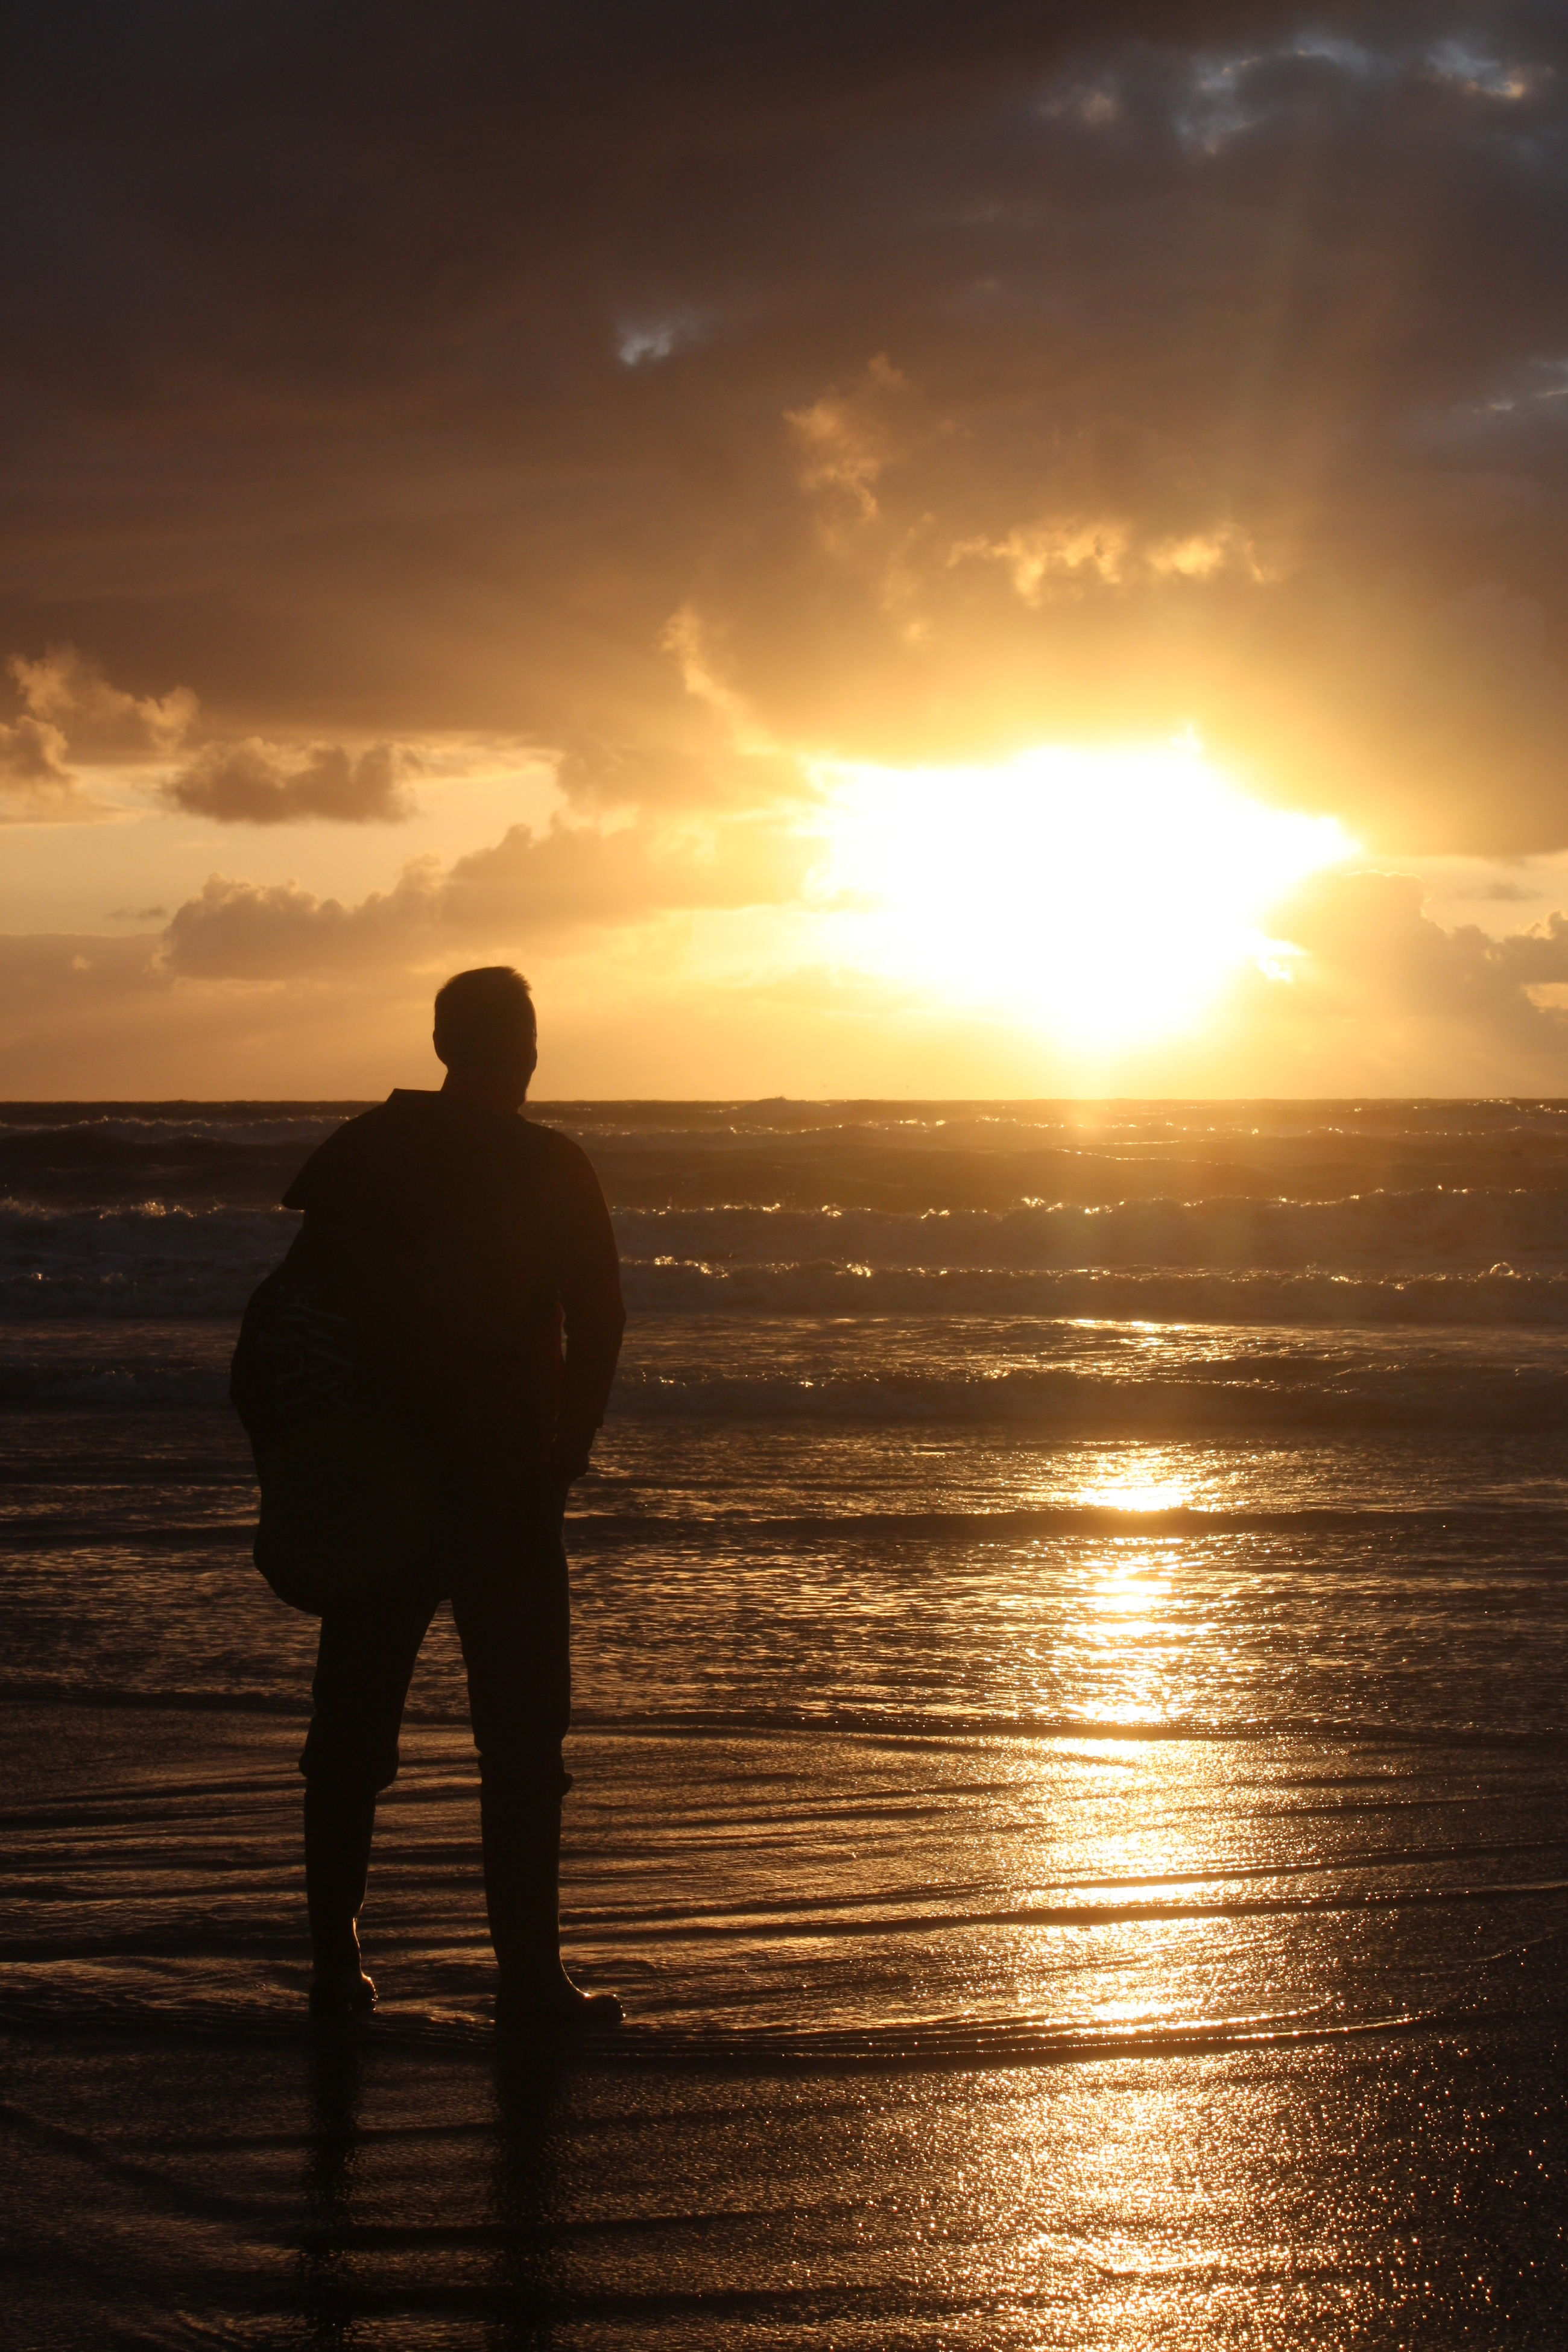 sunset, silhouette, sun, lifestyles, sky, leisure activity, standing, men, water, sea, orange color, tranquility, scenics, beauty in nature, sunlight, tranquil scene, nature, rear view